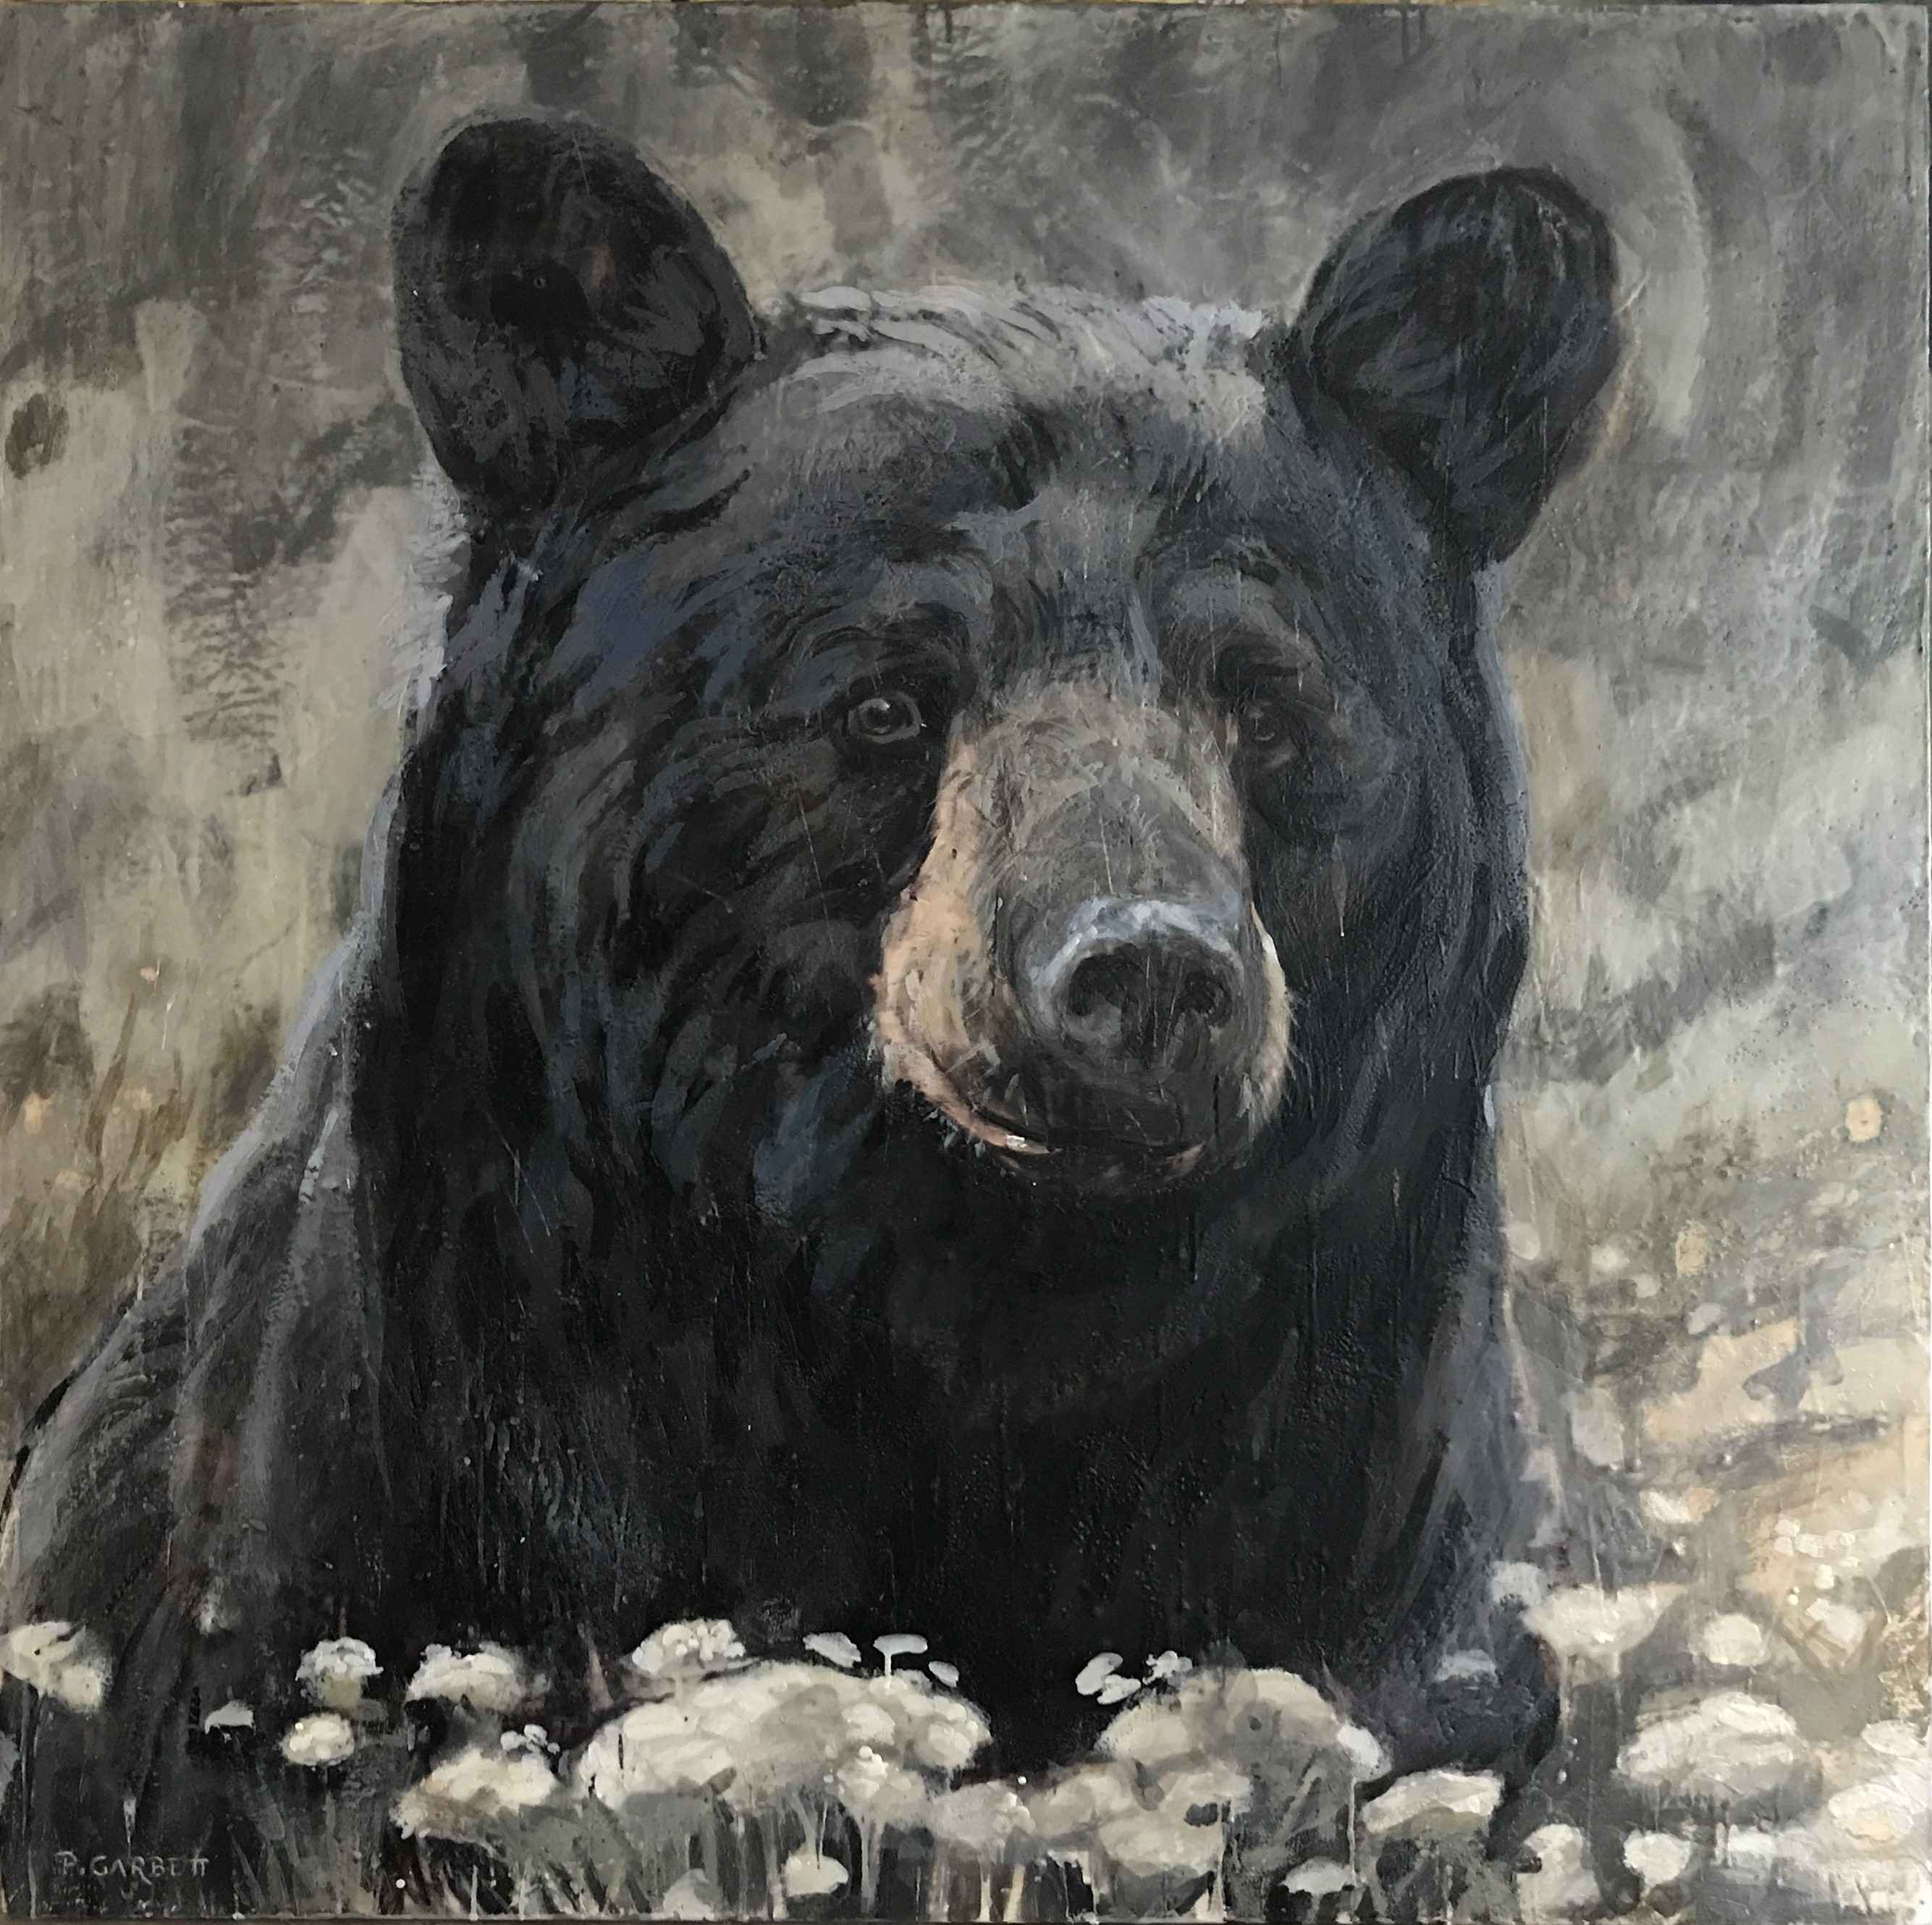 Black Bear #60-15 by  Paul Garbett - Masterpiece Online